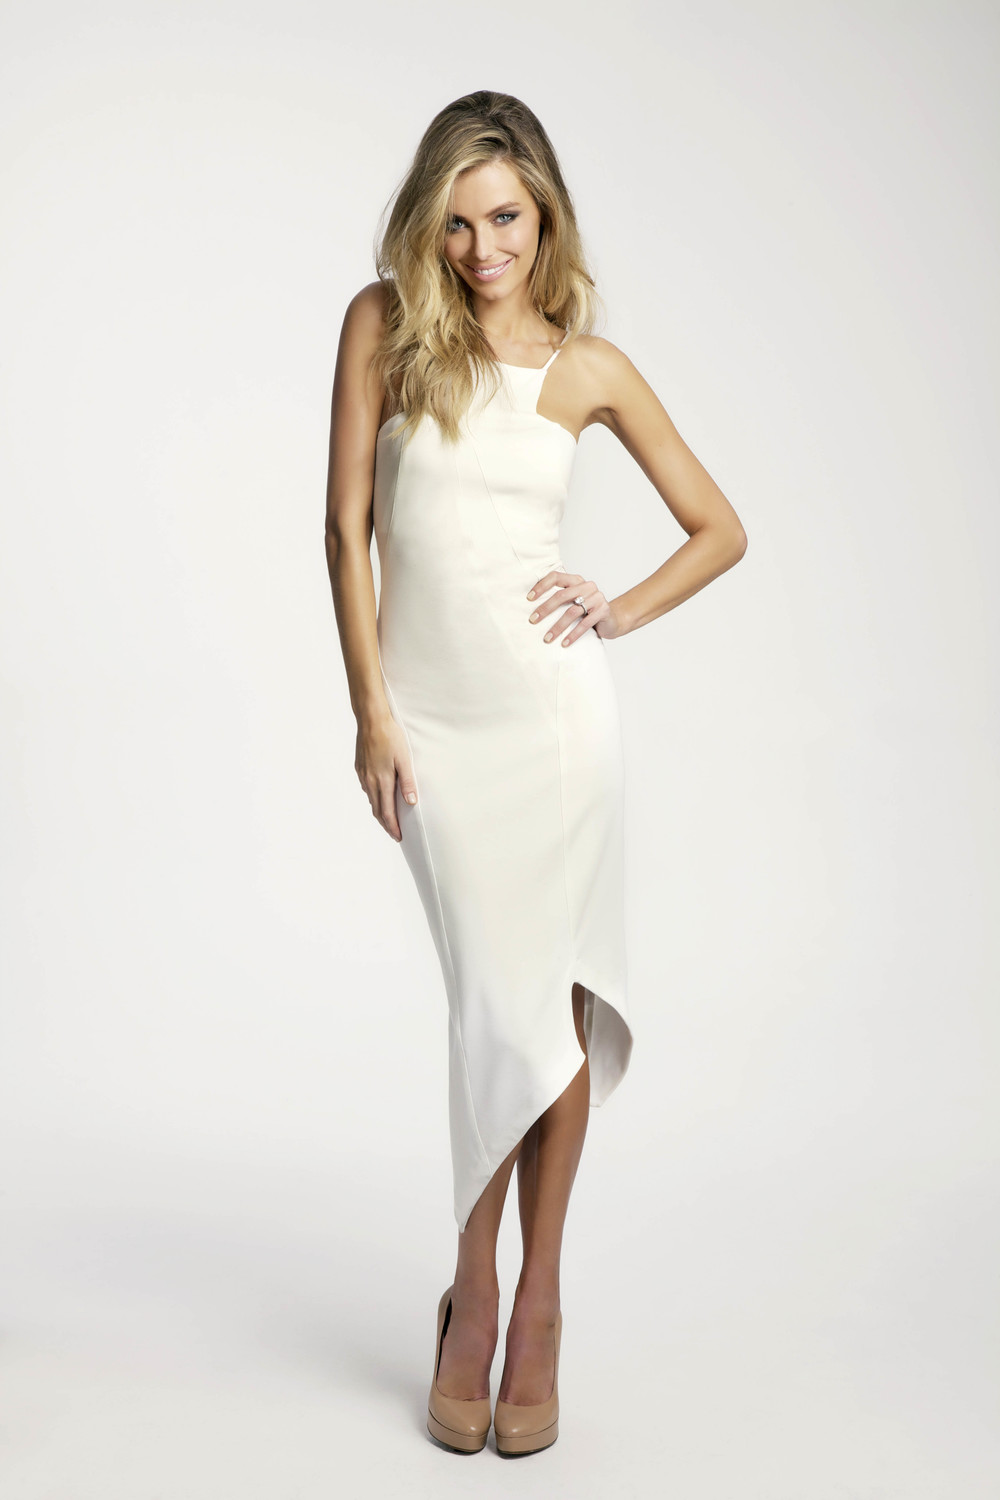 Jennifer Hawkins image - Chris Colls/Foxtel